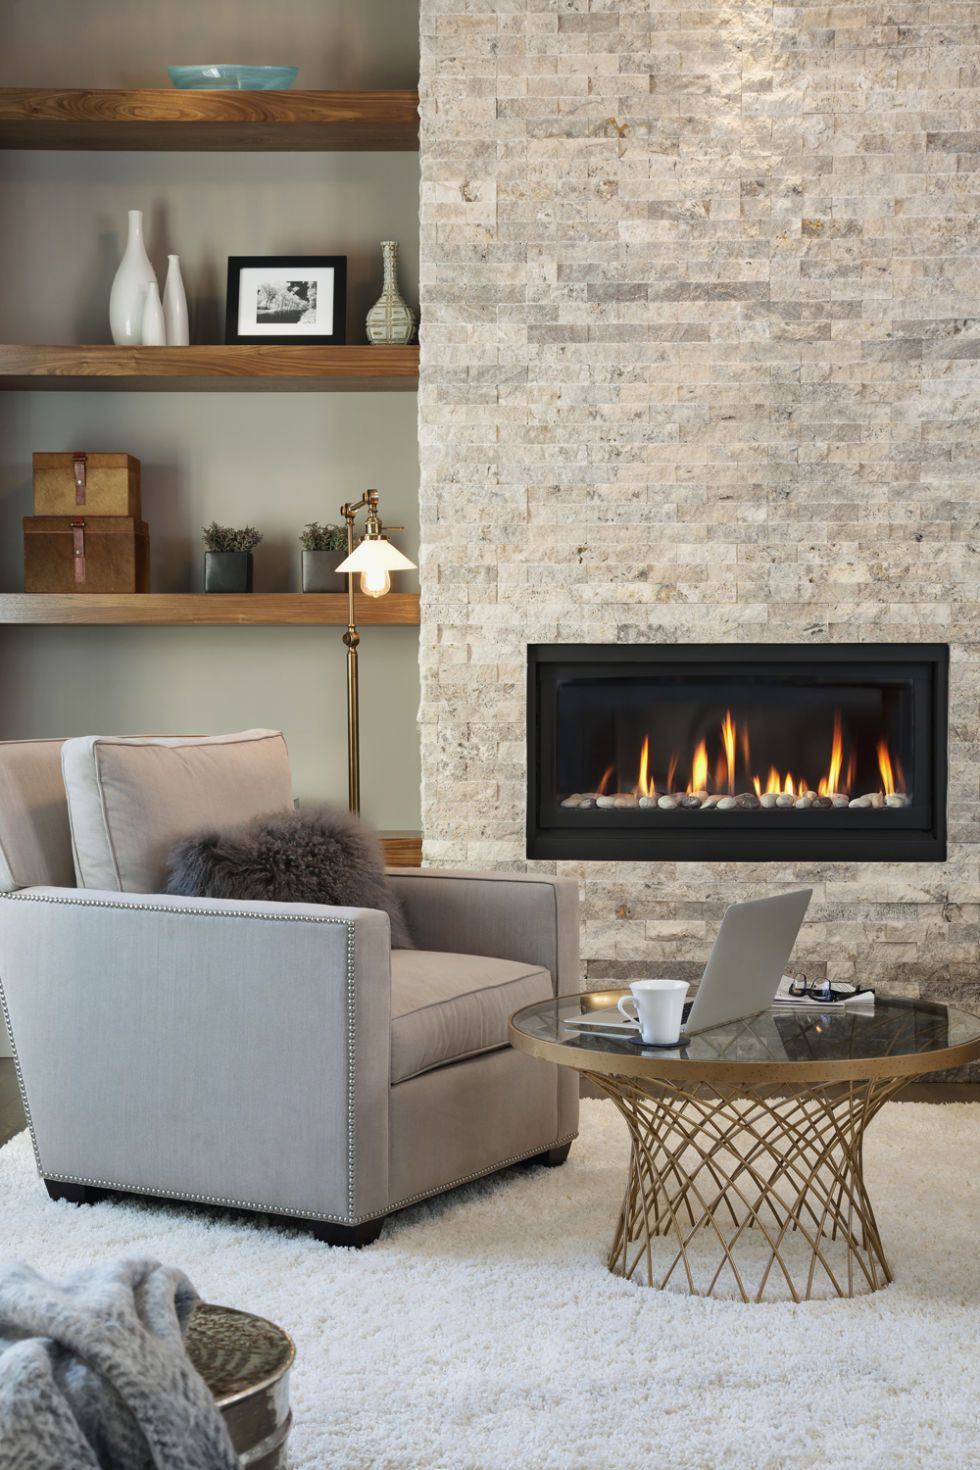 Cozy Photos of Fireplaces That Will Make You Want To Stay Inside All ...